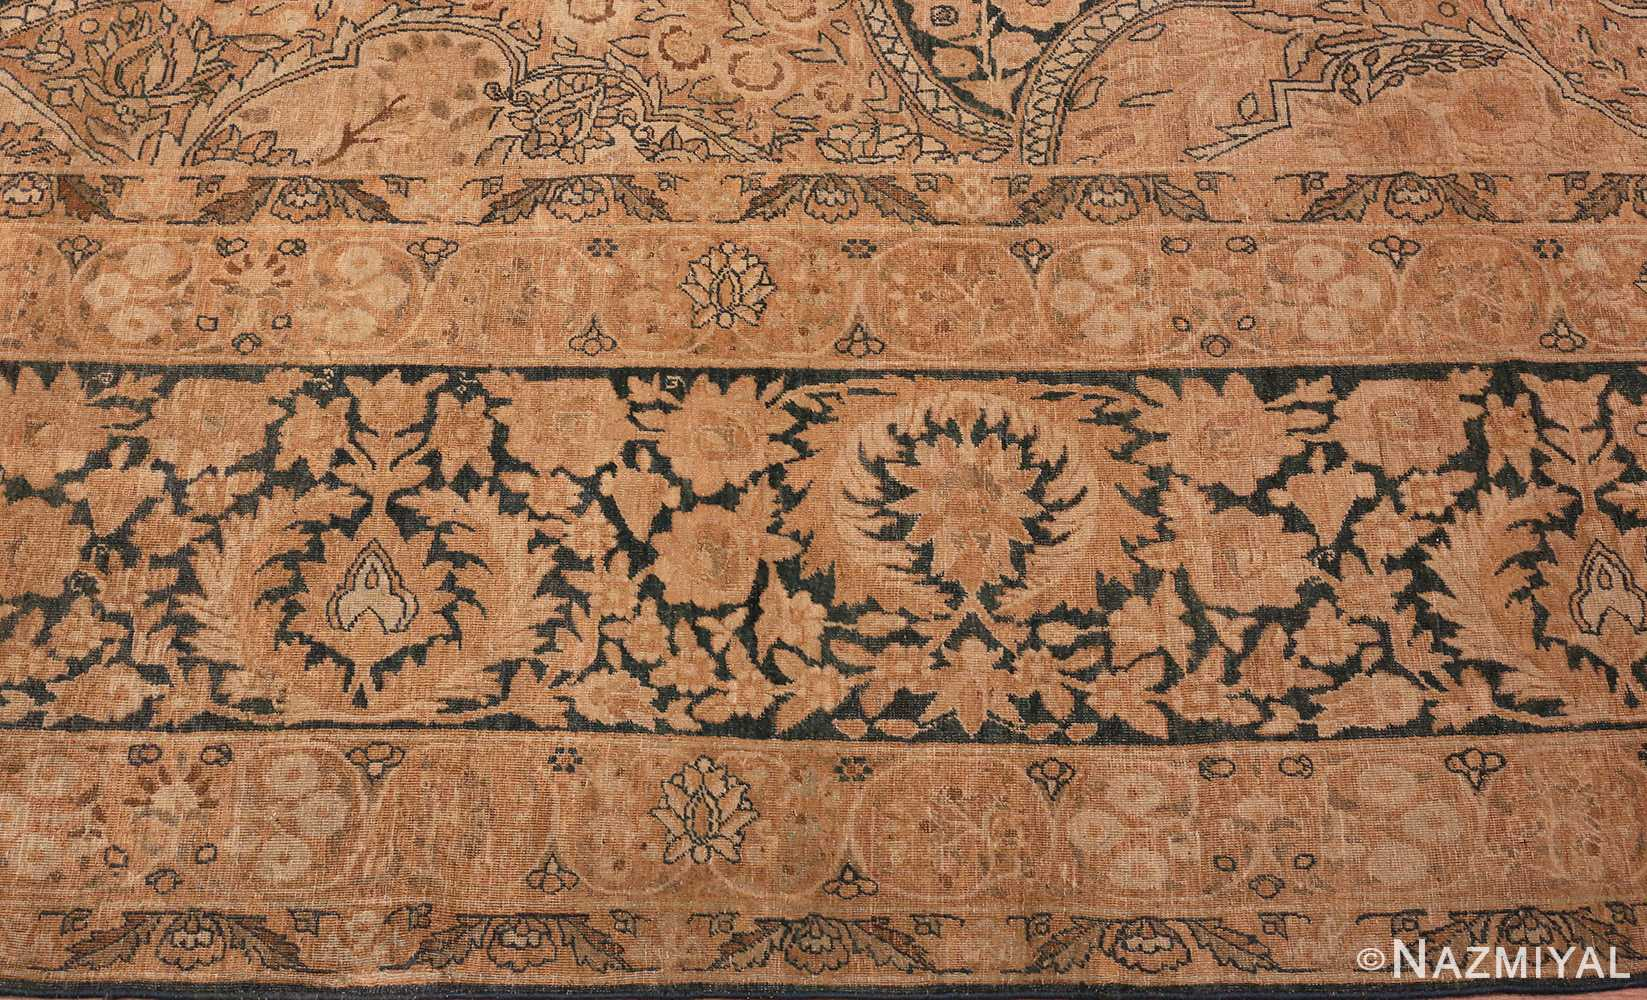 picture of the Border Of Antique Persian Kerman Rug #42703 from Nazmiyal Antique Rugs in NYC